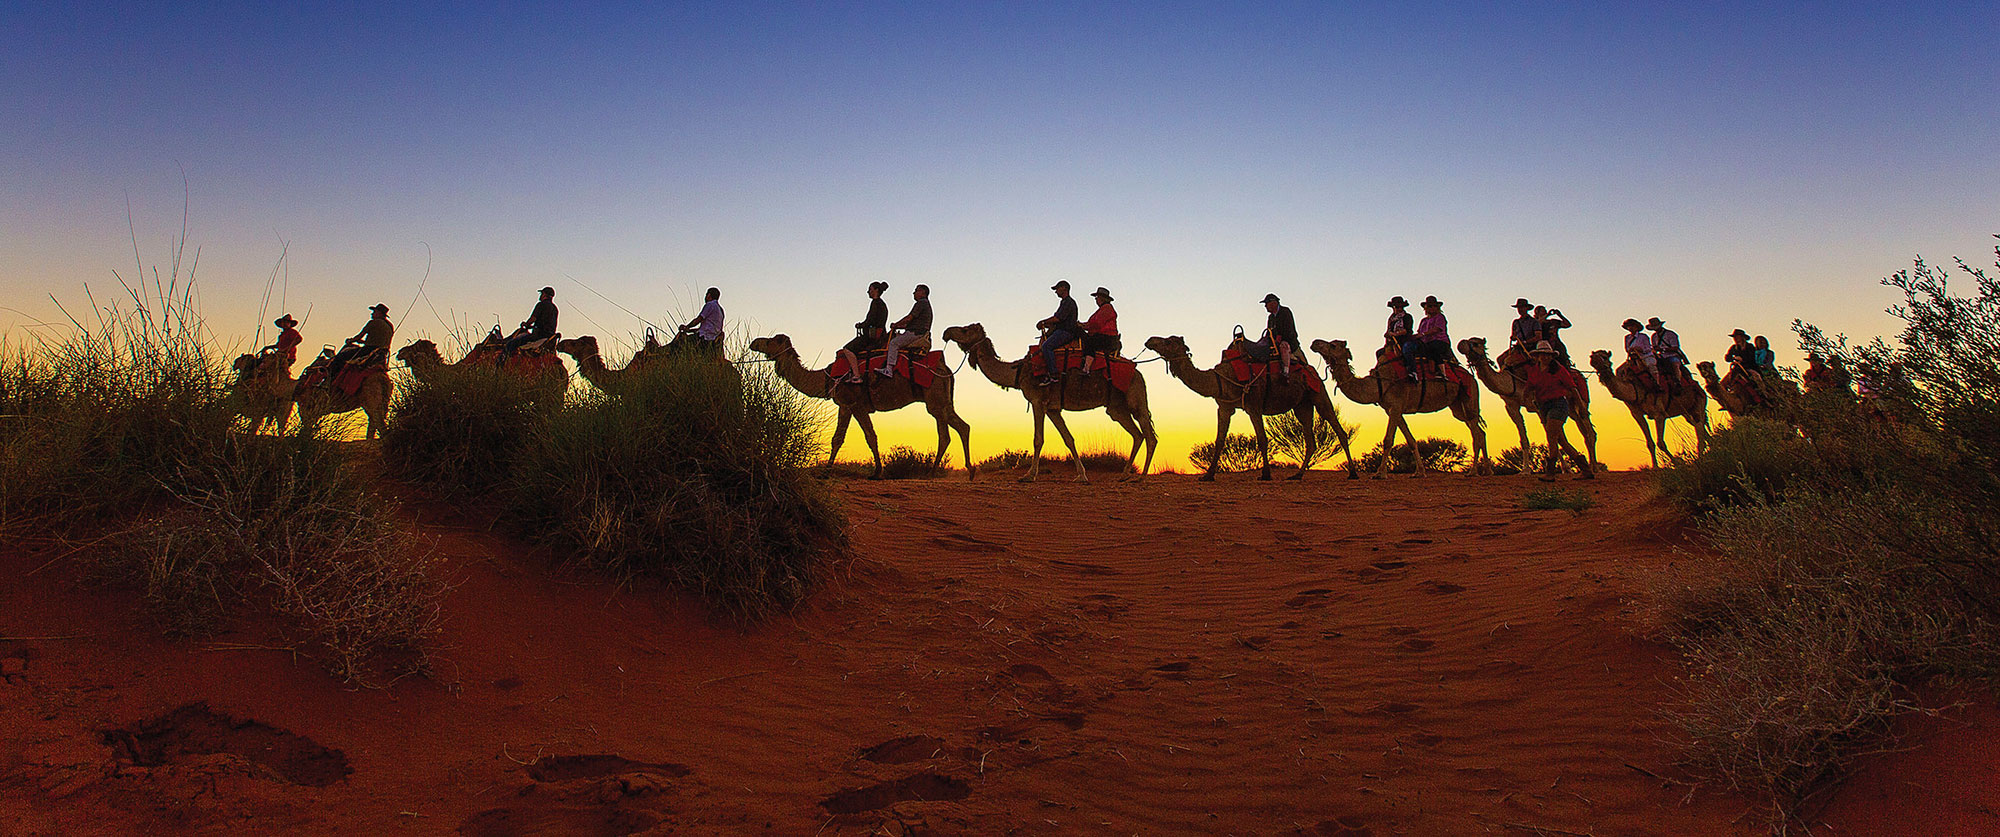 Australia Outback Vacation Uluru Camel Ride